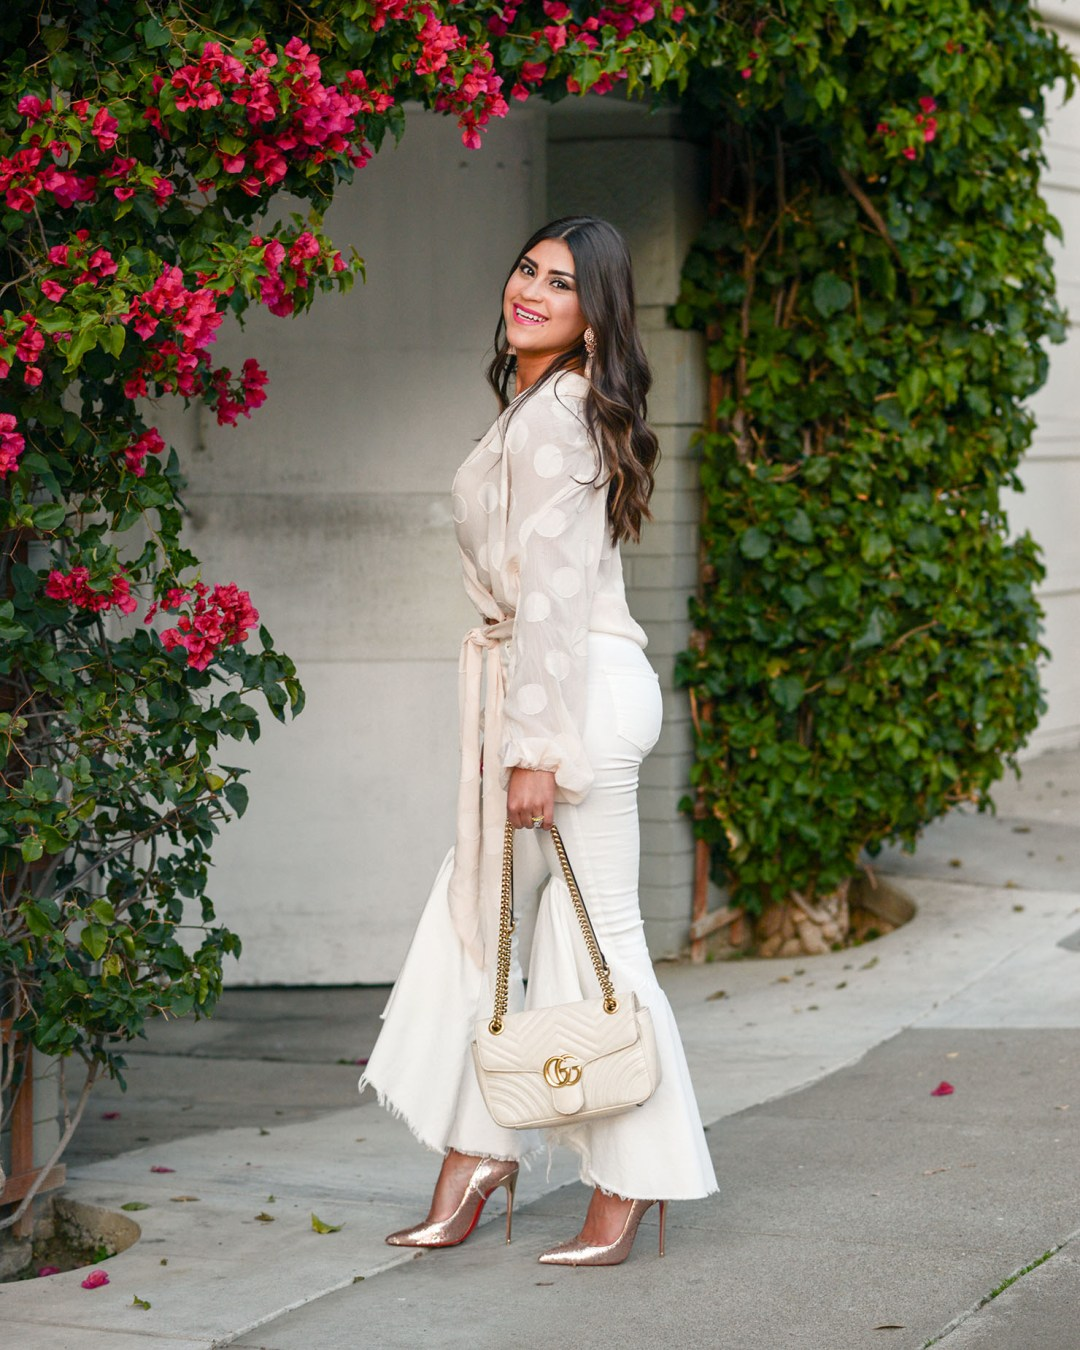 lifestyle blogger Kelsey Kaplan of Kelsey Kaplan Fashion wearing neutral outfit and sequin Christian Louboutin stilettos